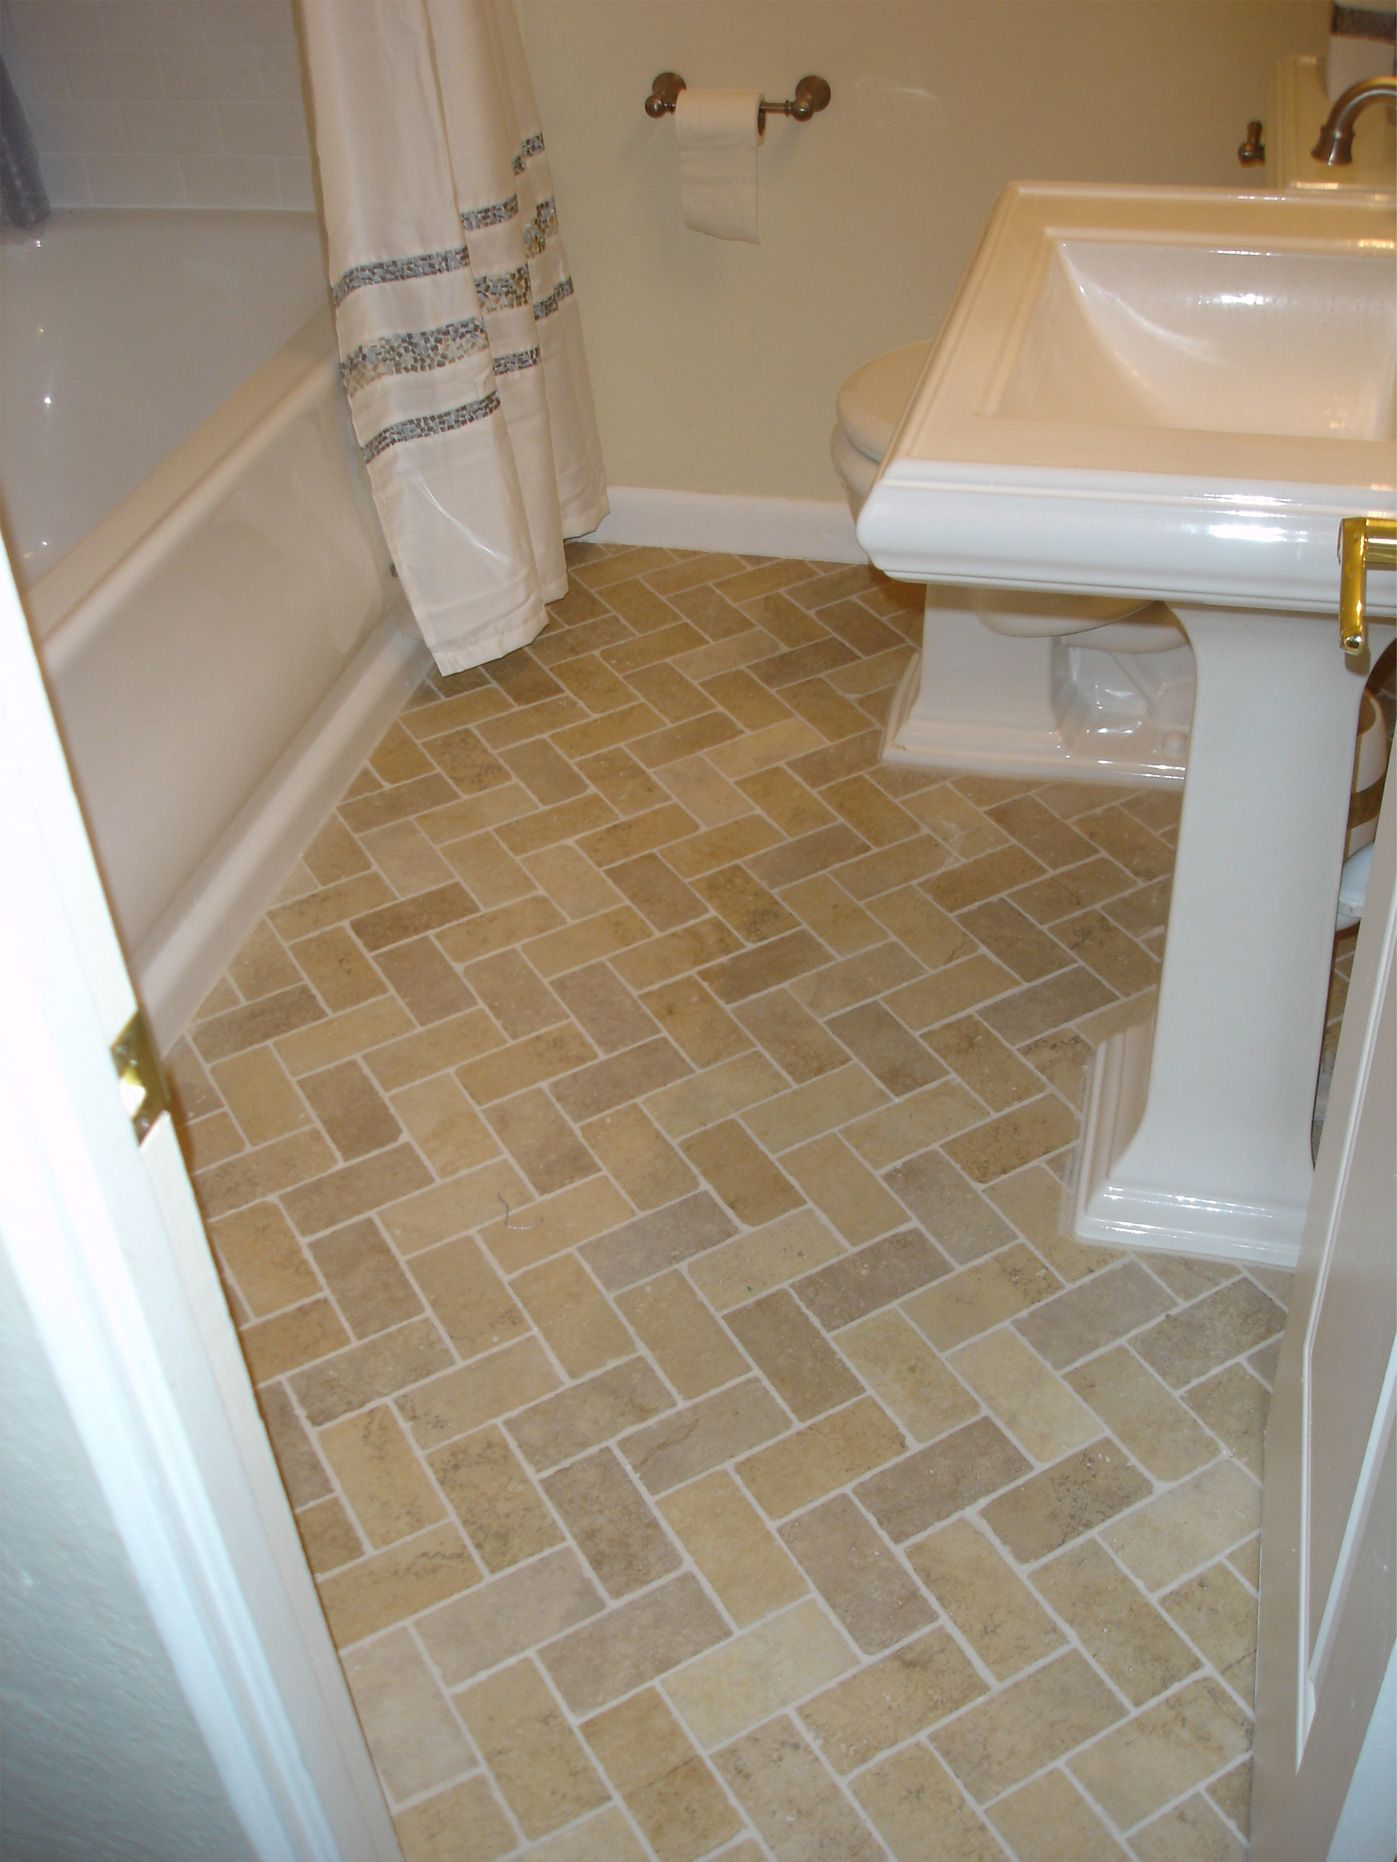 3×6 inch porcelain tile installed with a herringbone